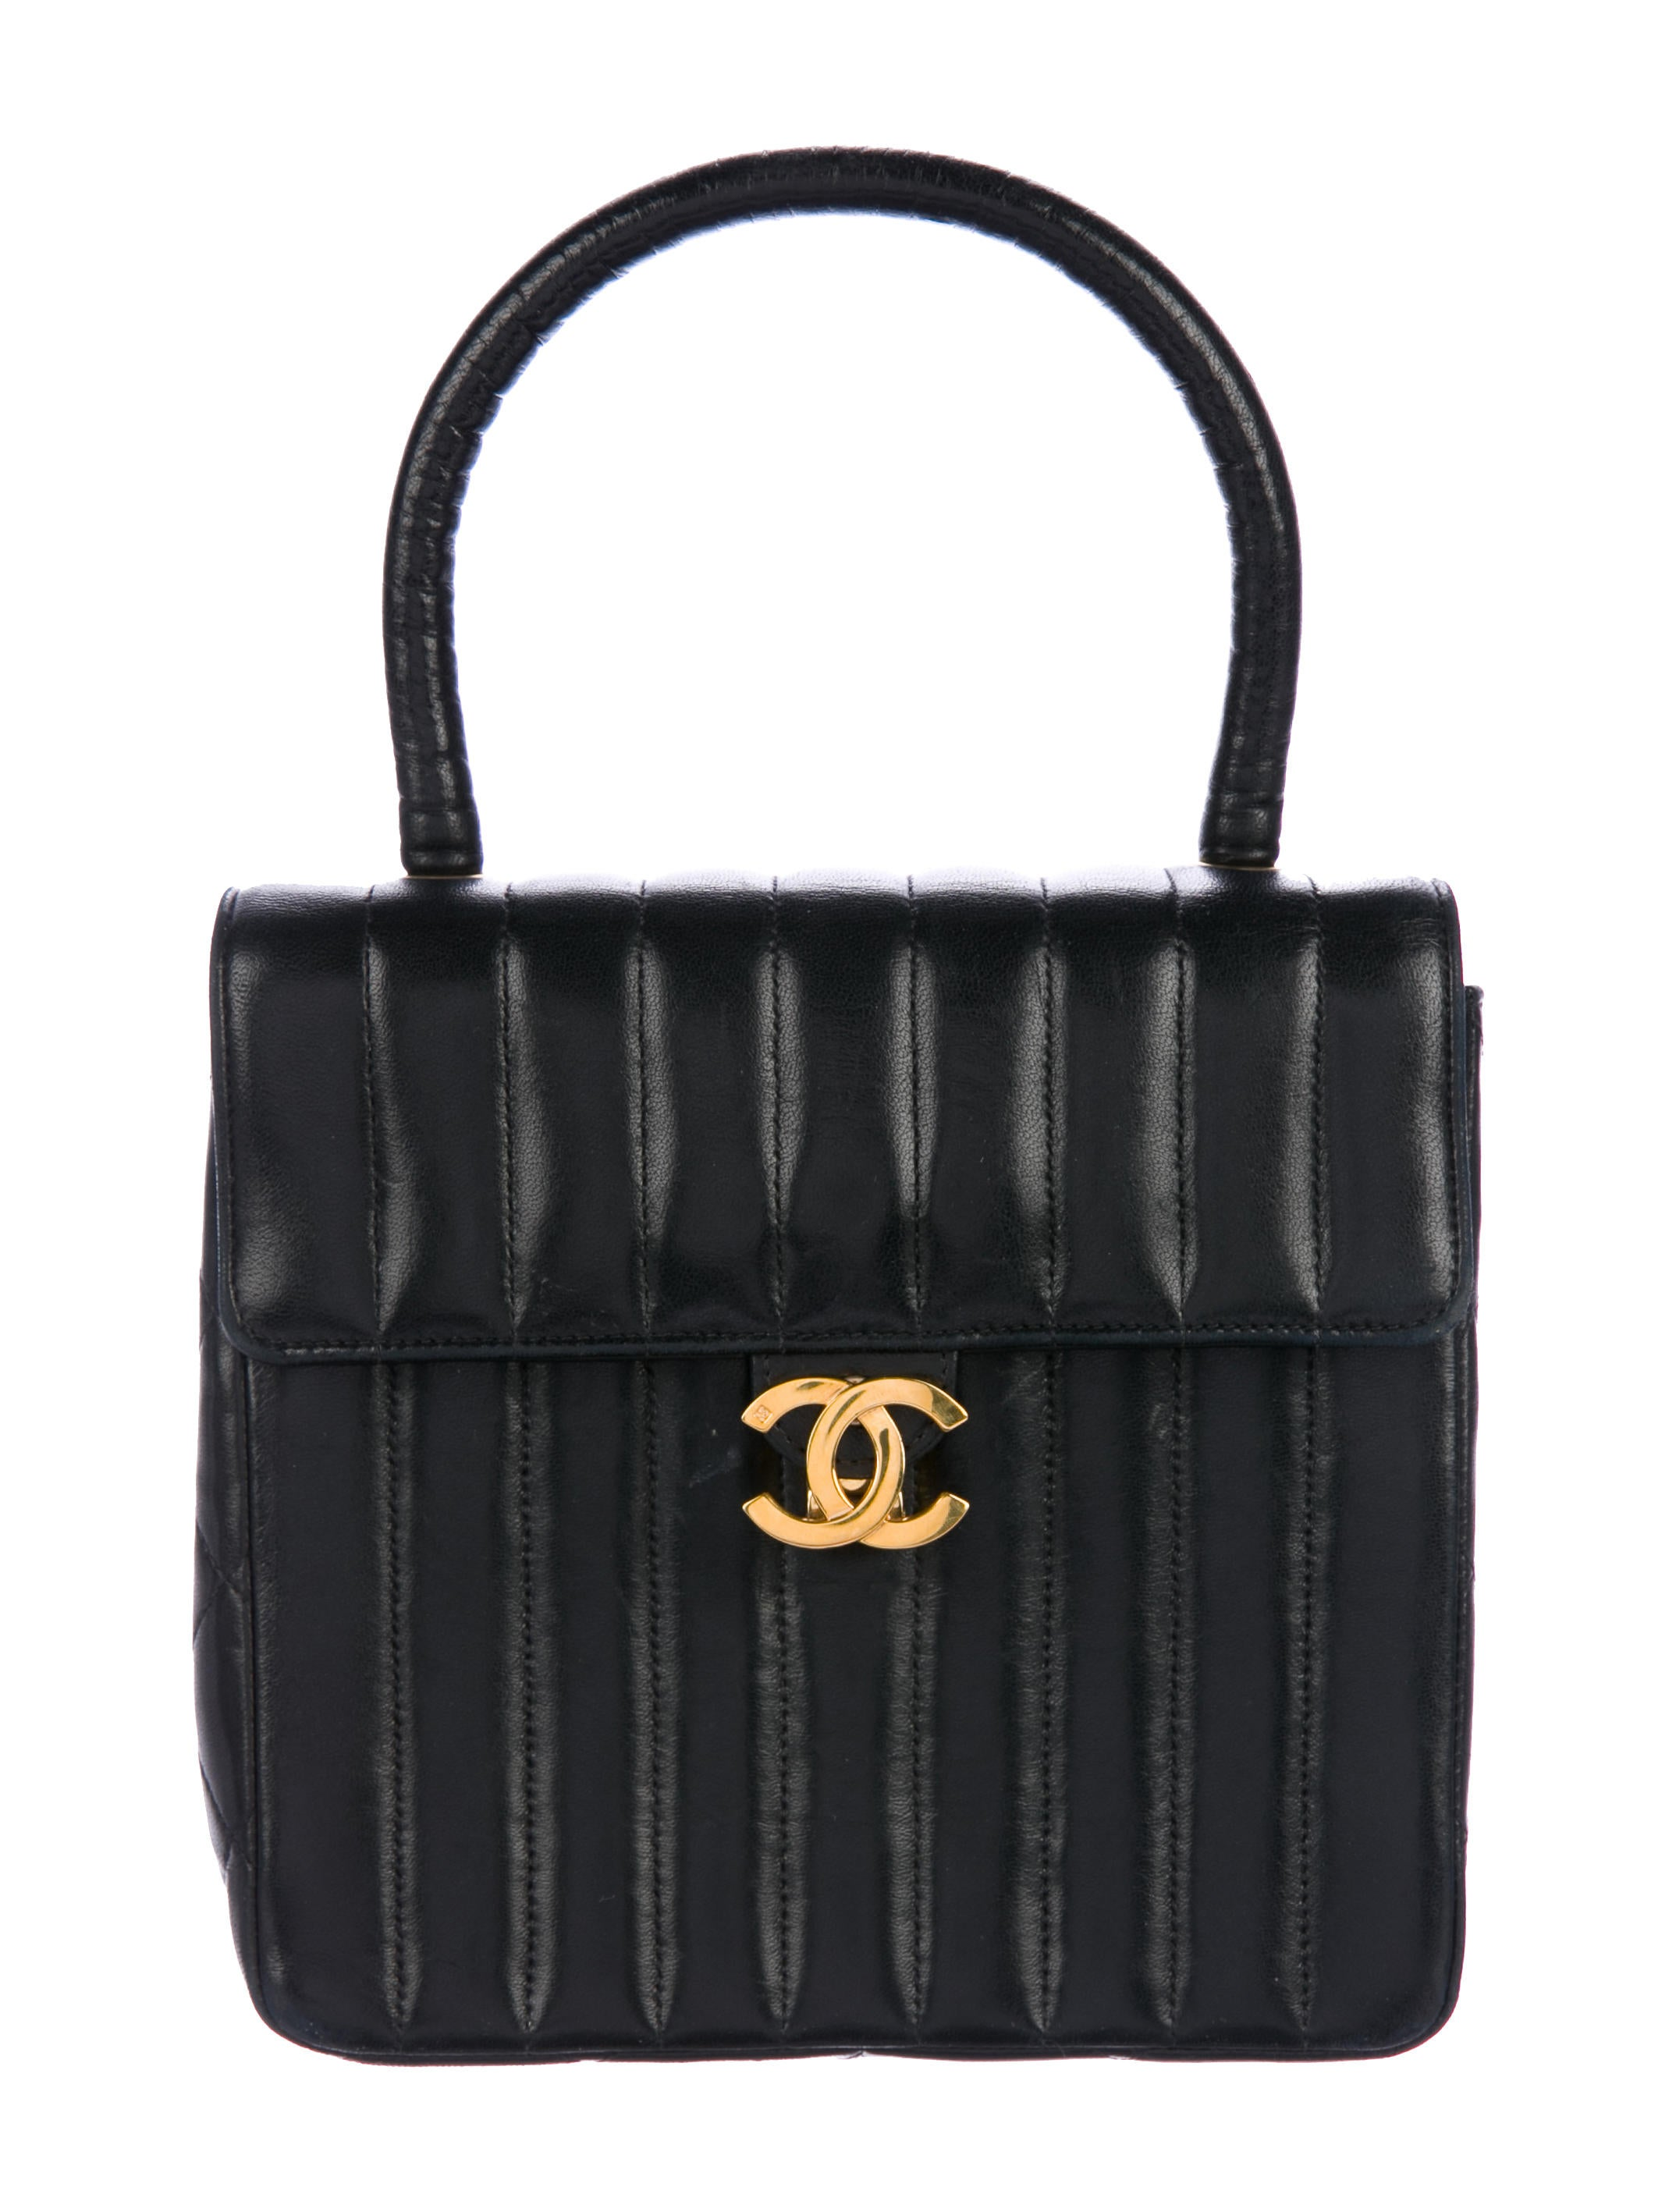 9b8a835d228e Chanel Vintage Lambskin Vertical Quilted Kelly Bag - Handbags ...